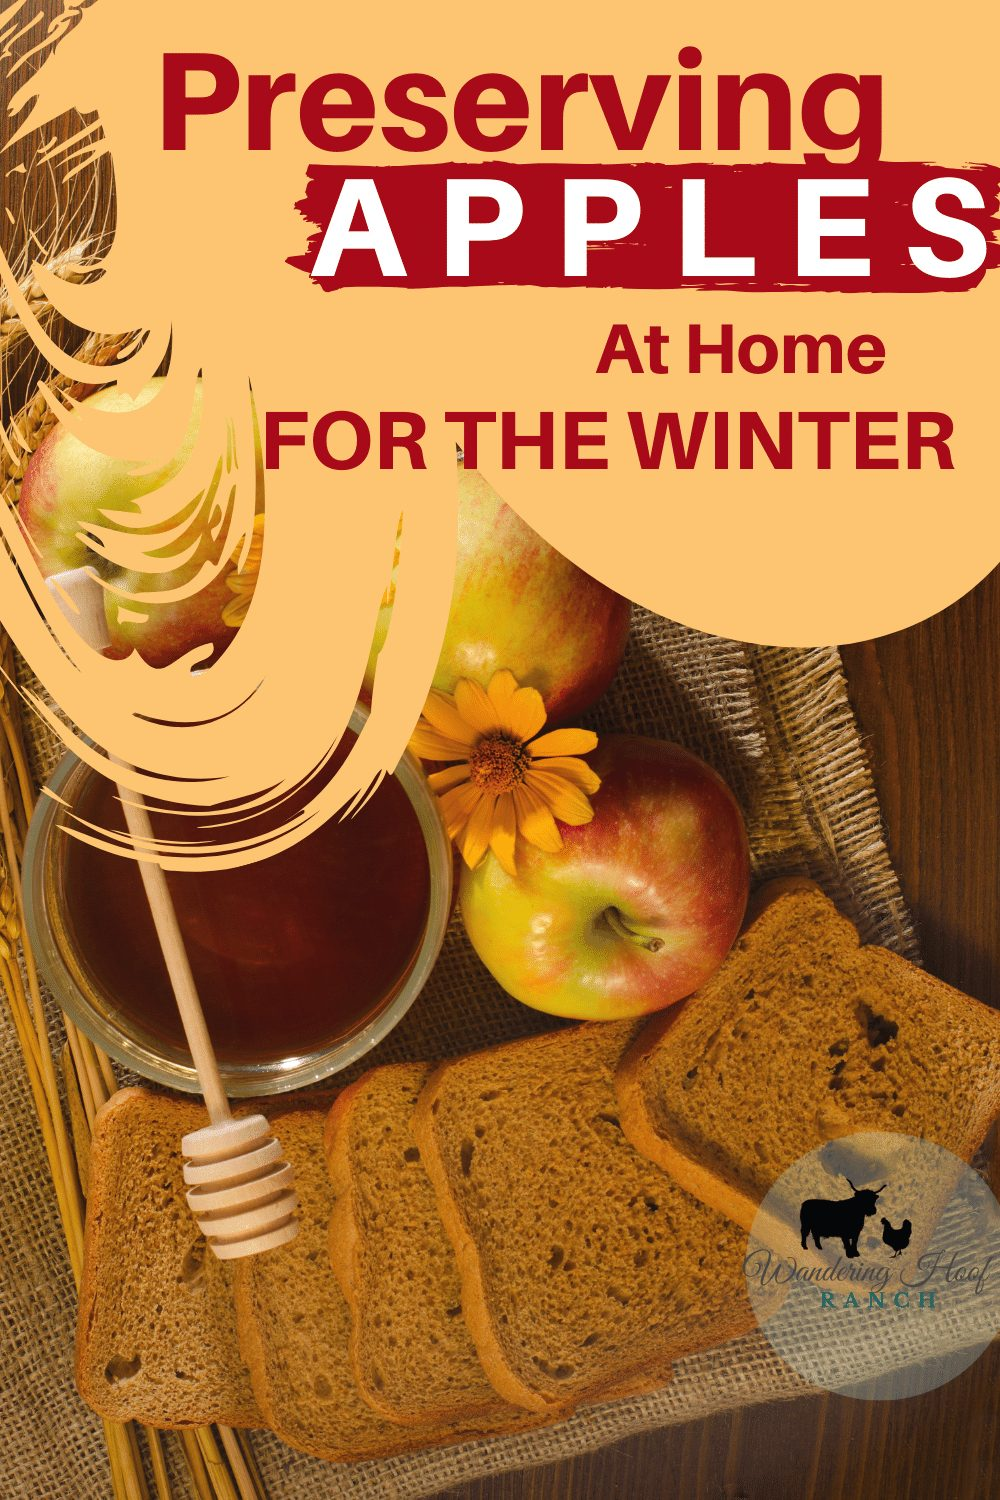 PRESERVING APPLES AT HOME FOR THE WINTER PIN IMAGE